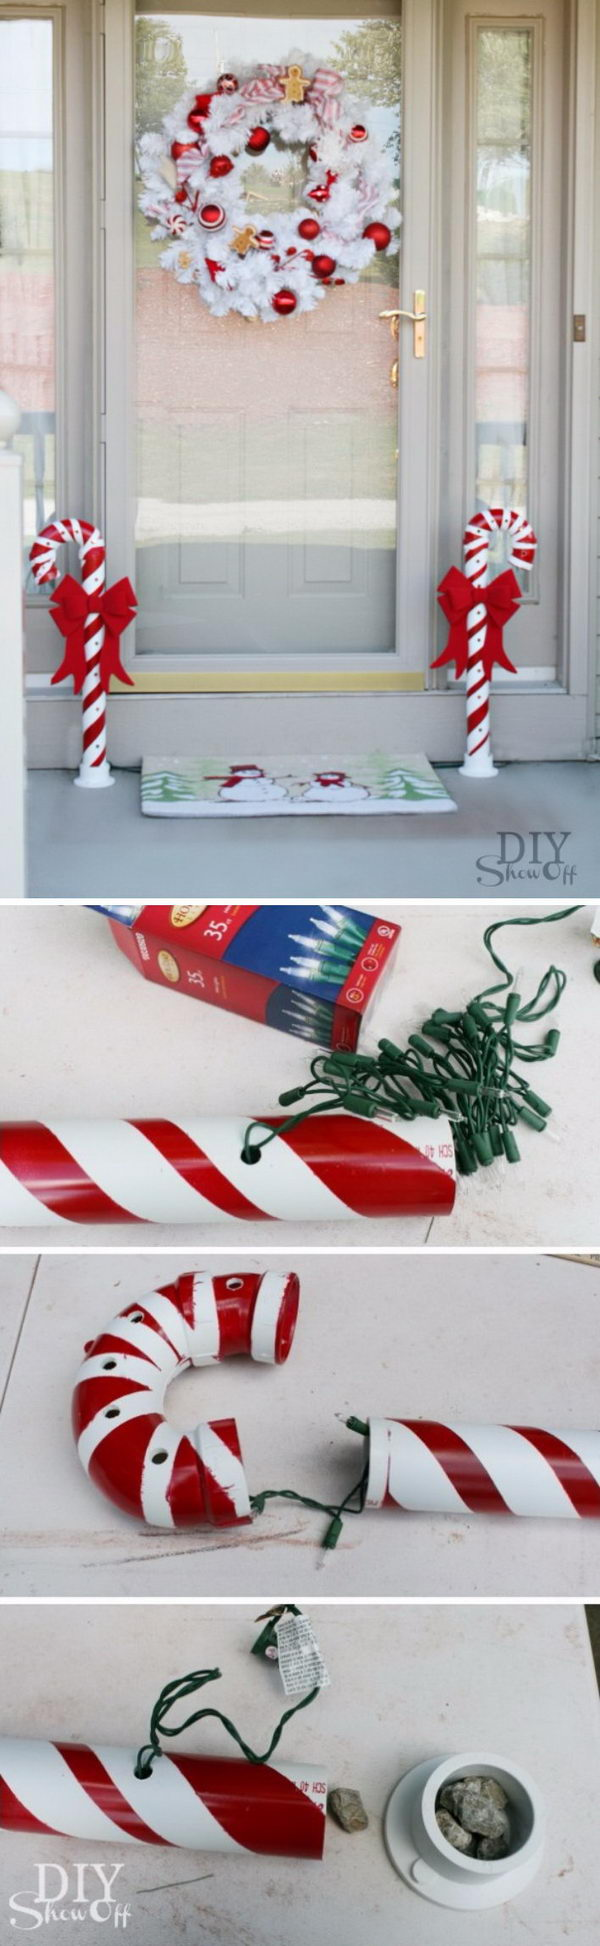 candy canes made from pvc pipes - Candy Cane Outdoor Christmas Decorations